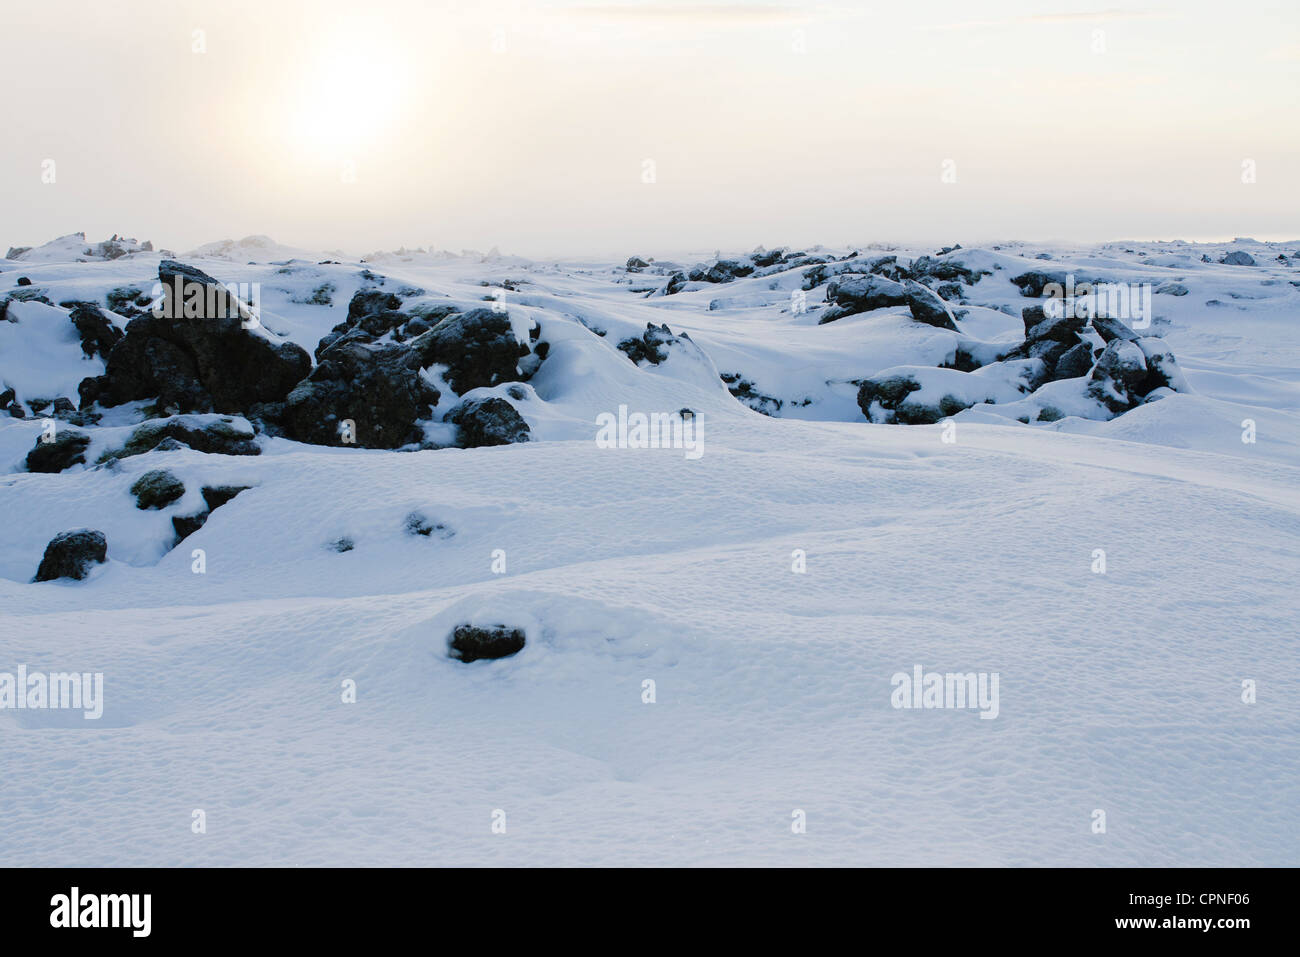 Volcanic rock covered in snow, Reykjanes Peninsula, Iceland - Stock Image